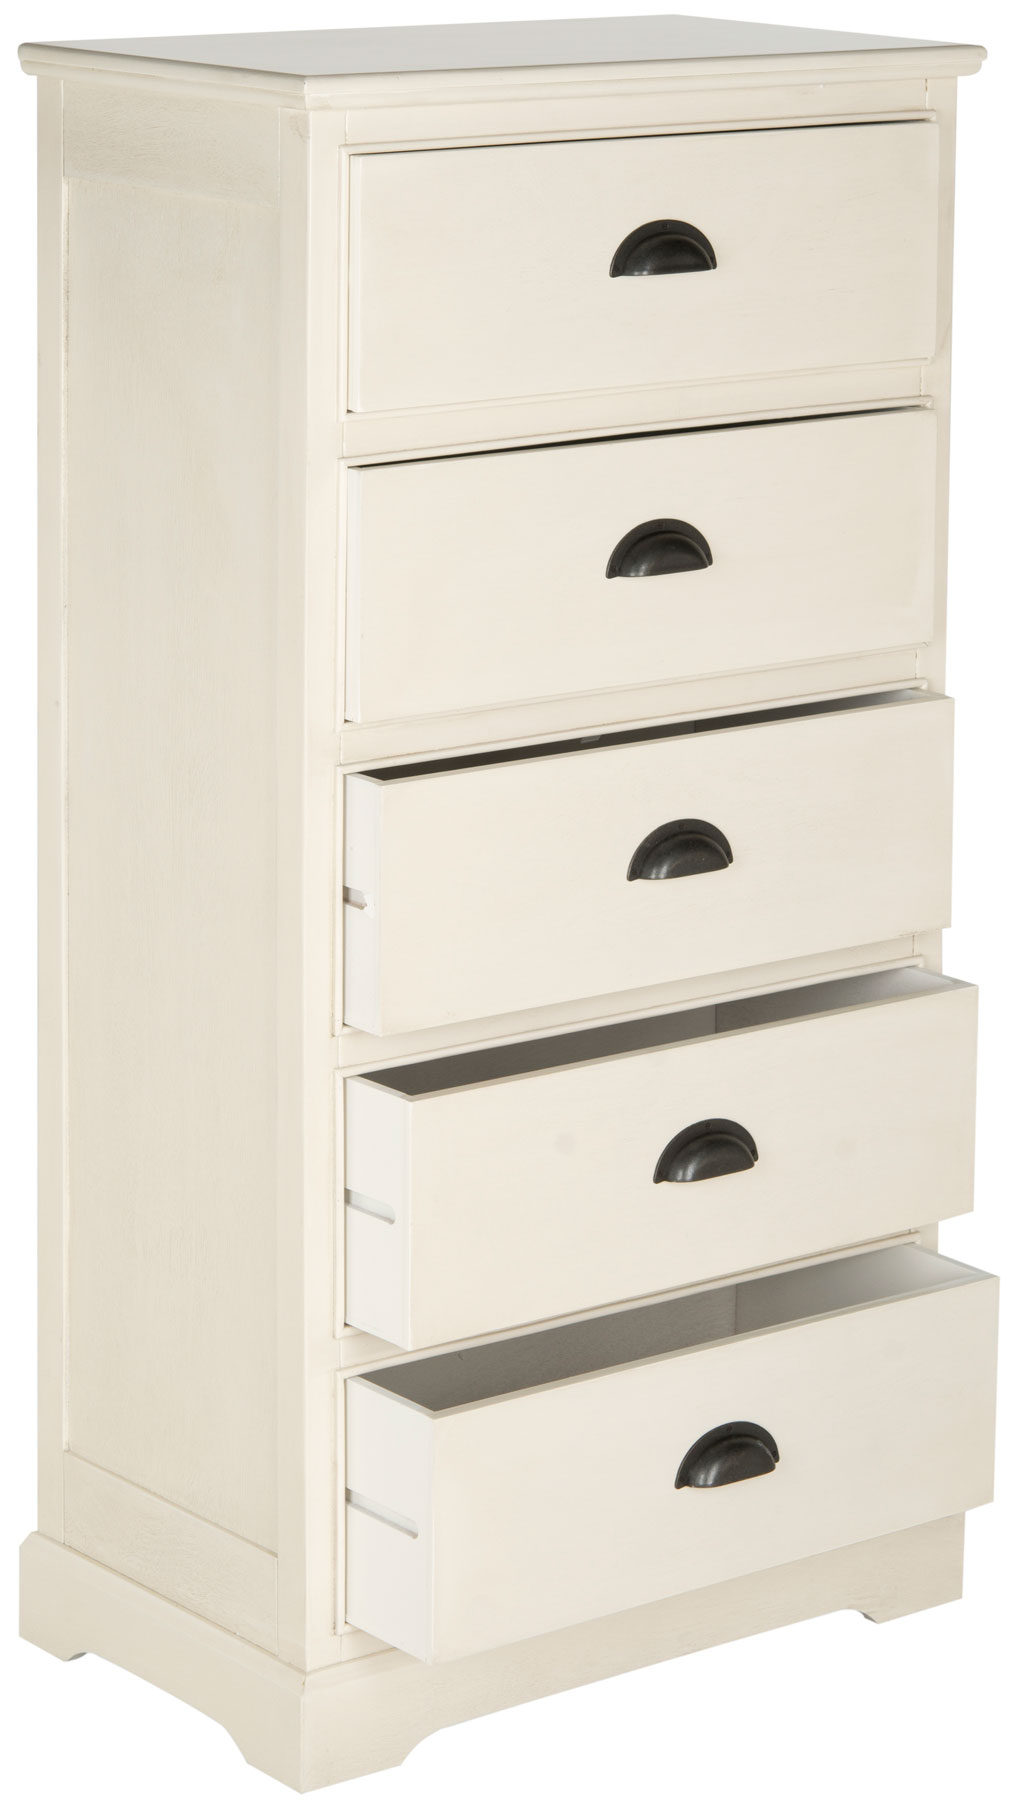 Amh5728b Storage Furniture Furniture By Safavieh